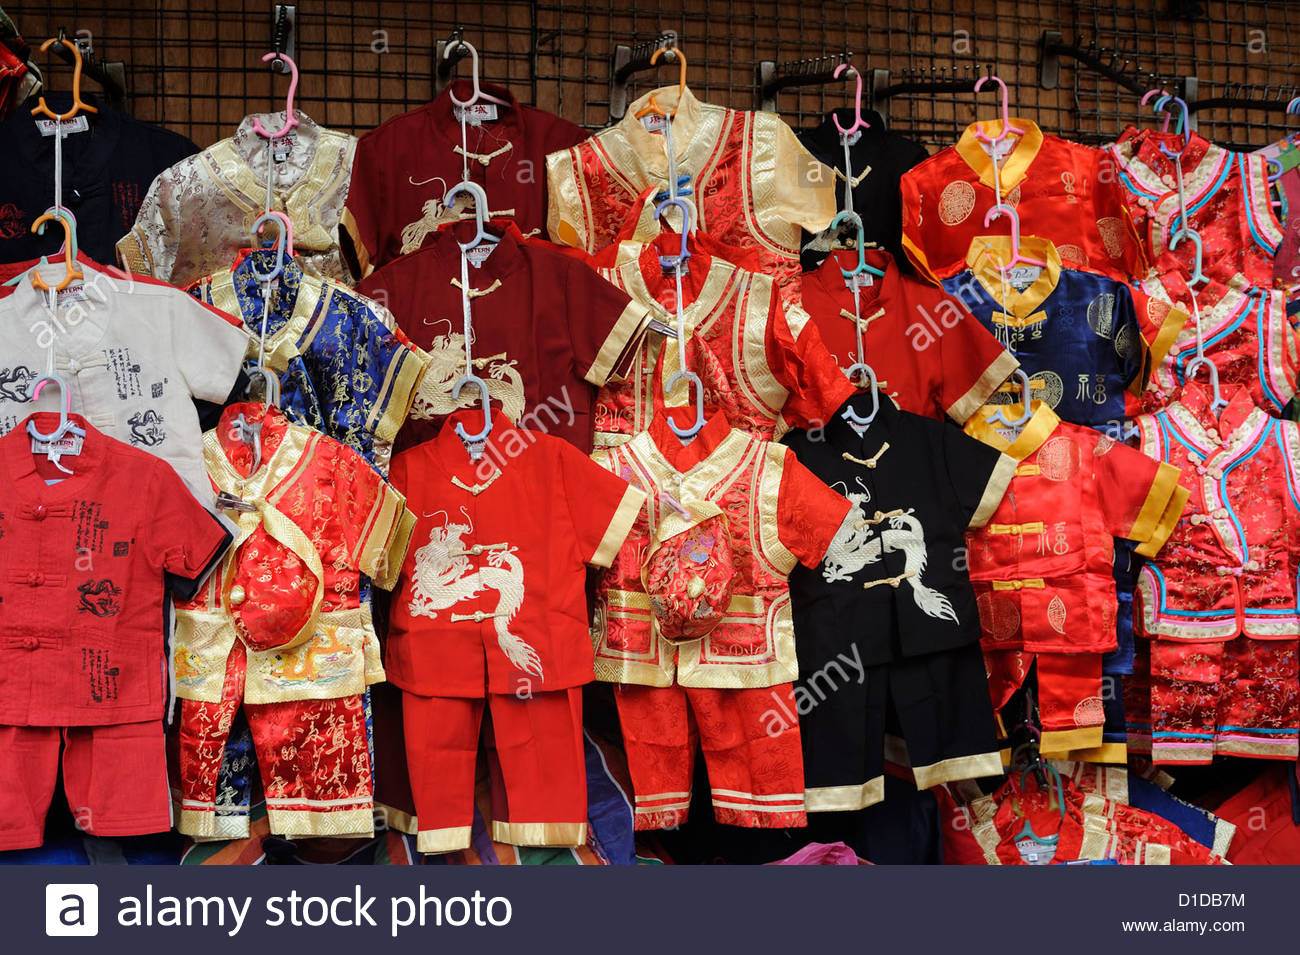 Bangkok Thailand Chinatown, stall selling traditional Chinese childrens clothing. - Stock Image